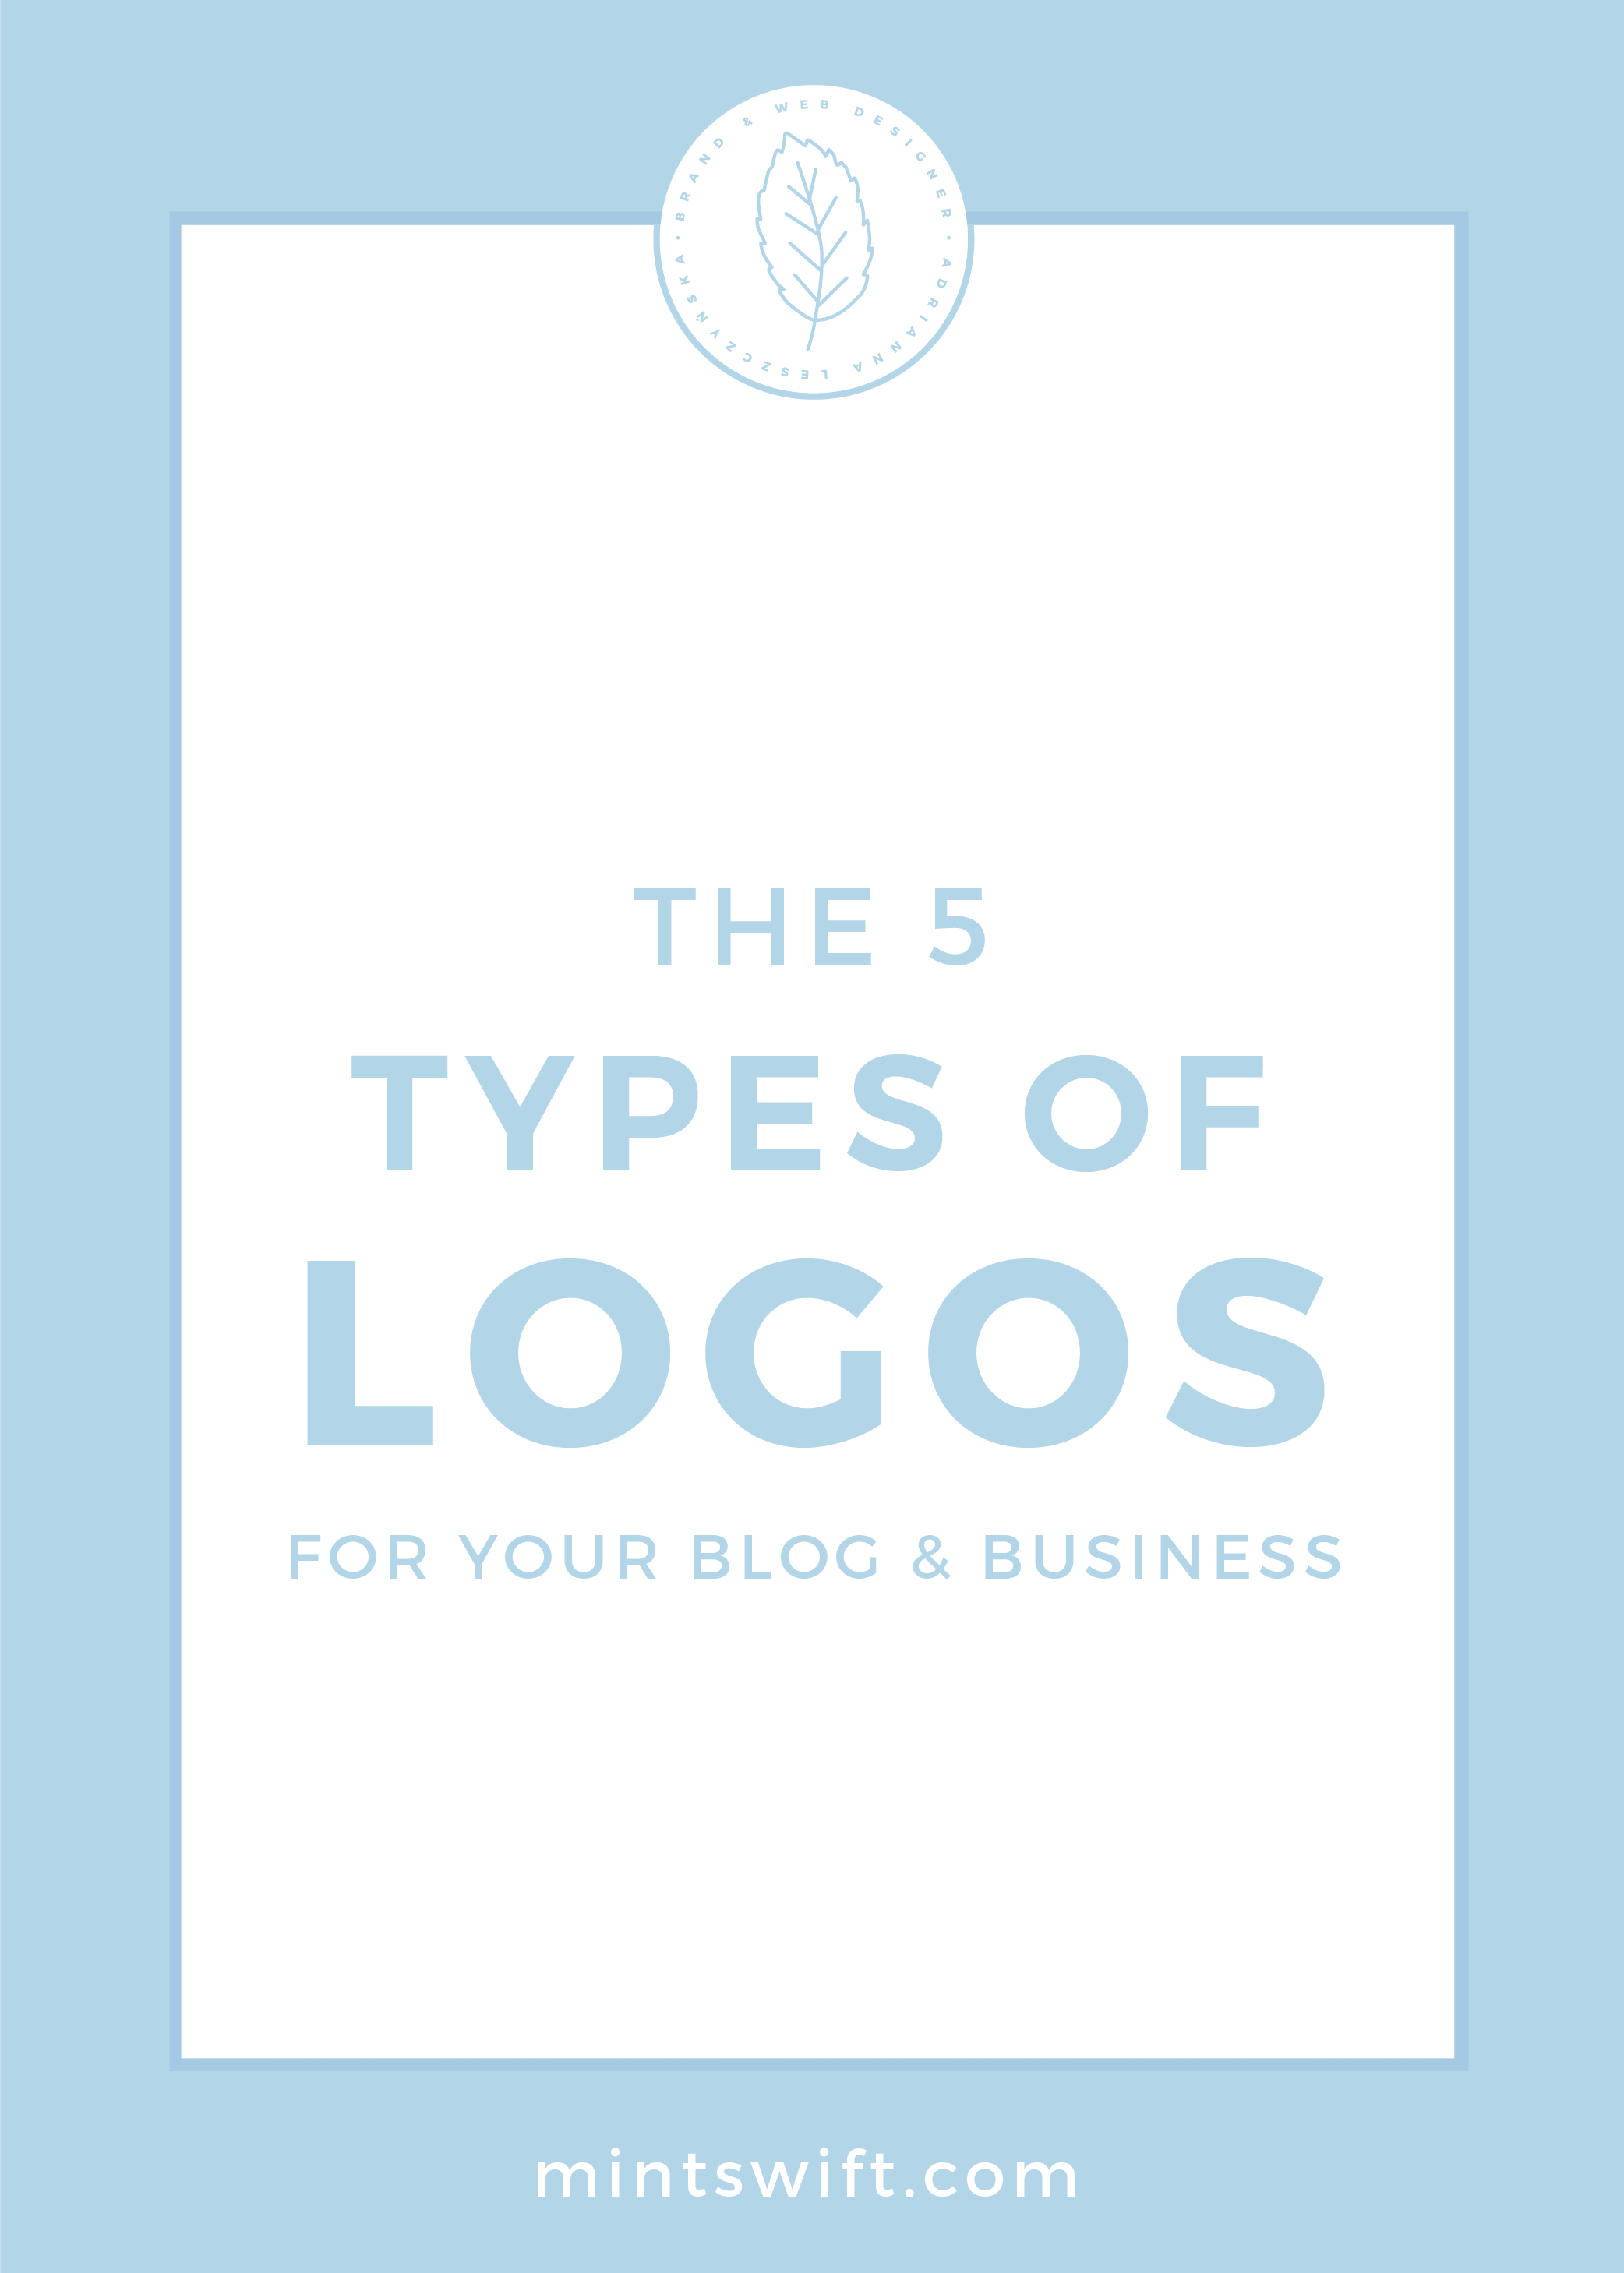 The 5 Types of Logos for Your Blog & Business by MintSwift